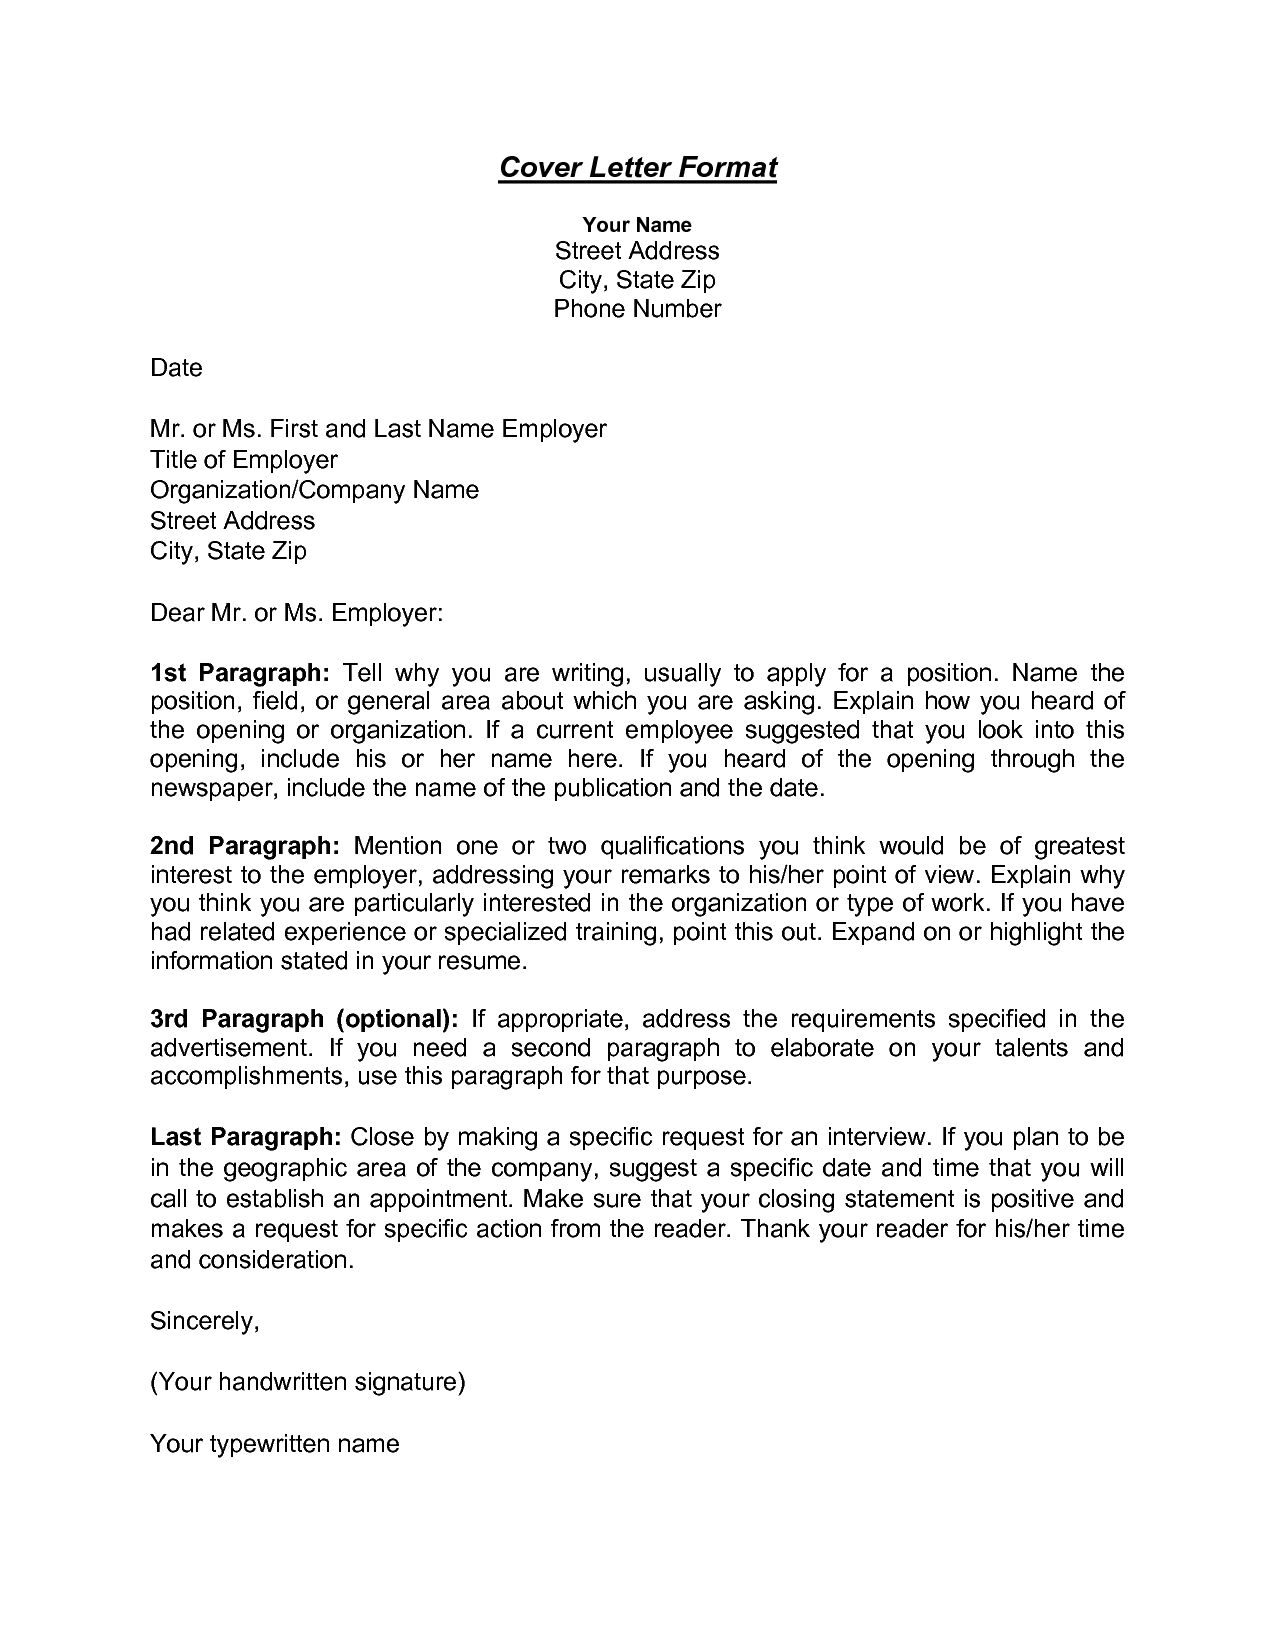 Type my geography cover letter business plan template for established business